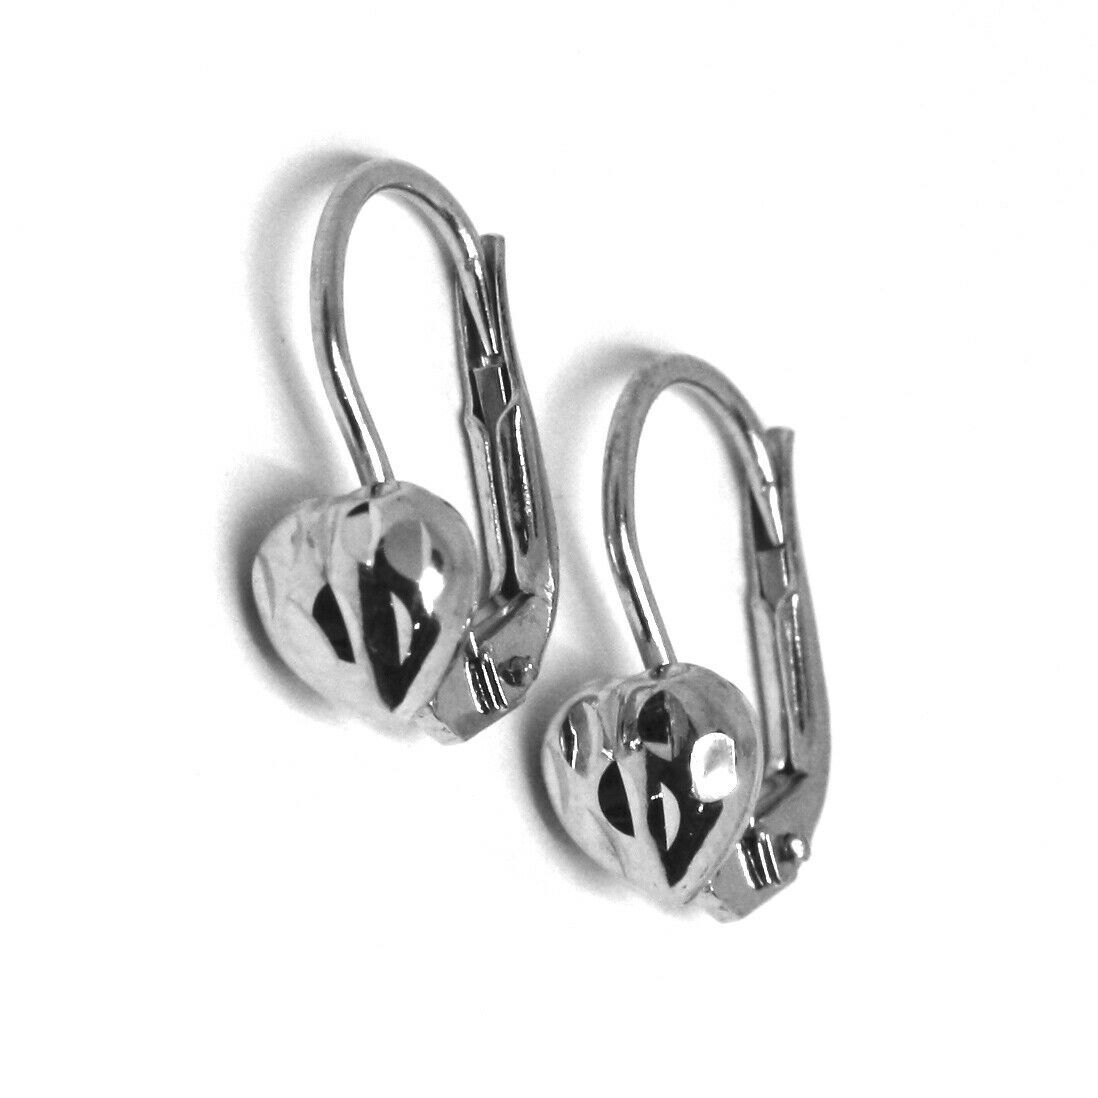 18K WHITE GOLD KIDS EARRINGS, HAMMERED HEART, LEVERBACK CLOSURE, ITALY MADE